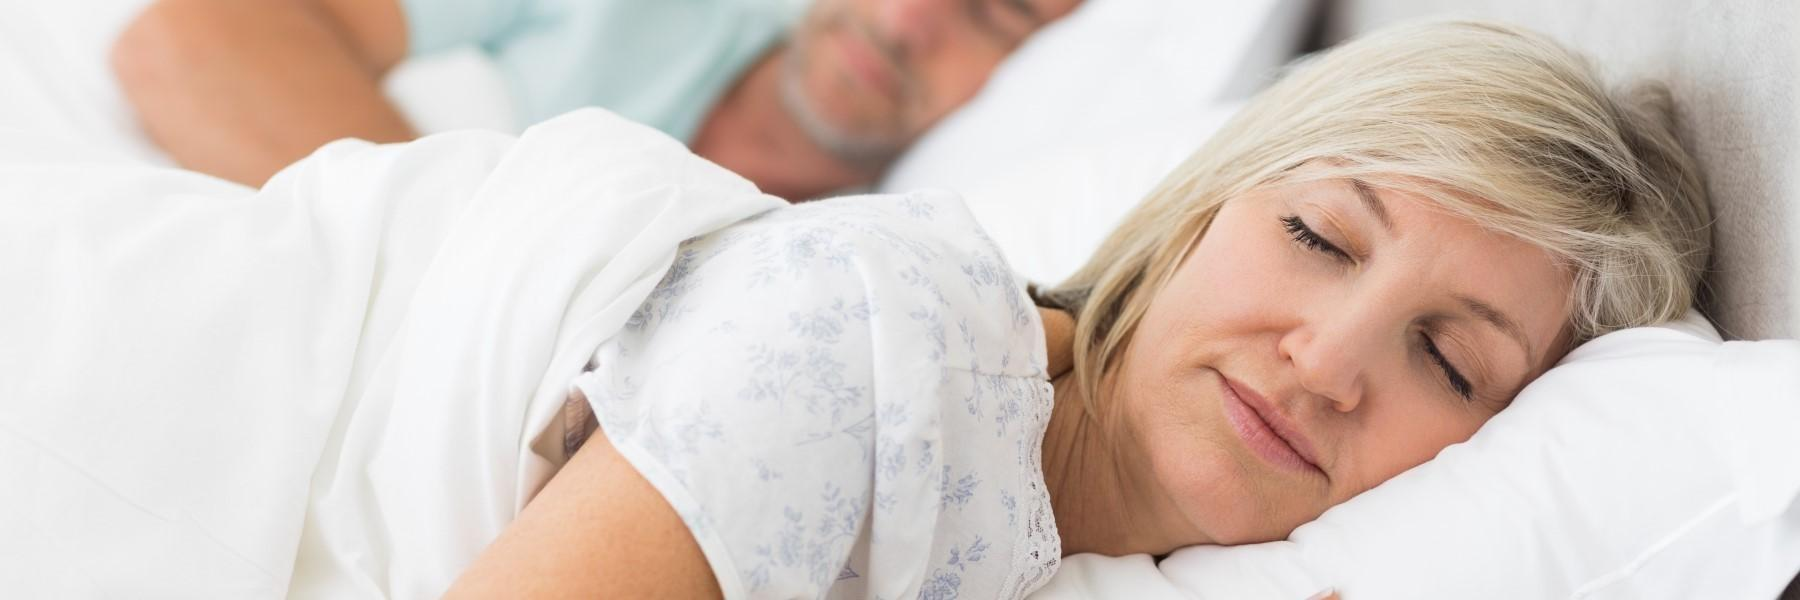 Woman sleeping peacefully | sleep apnea chagrin falls